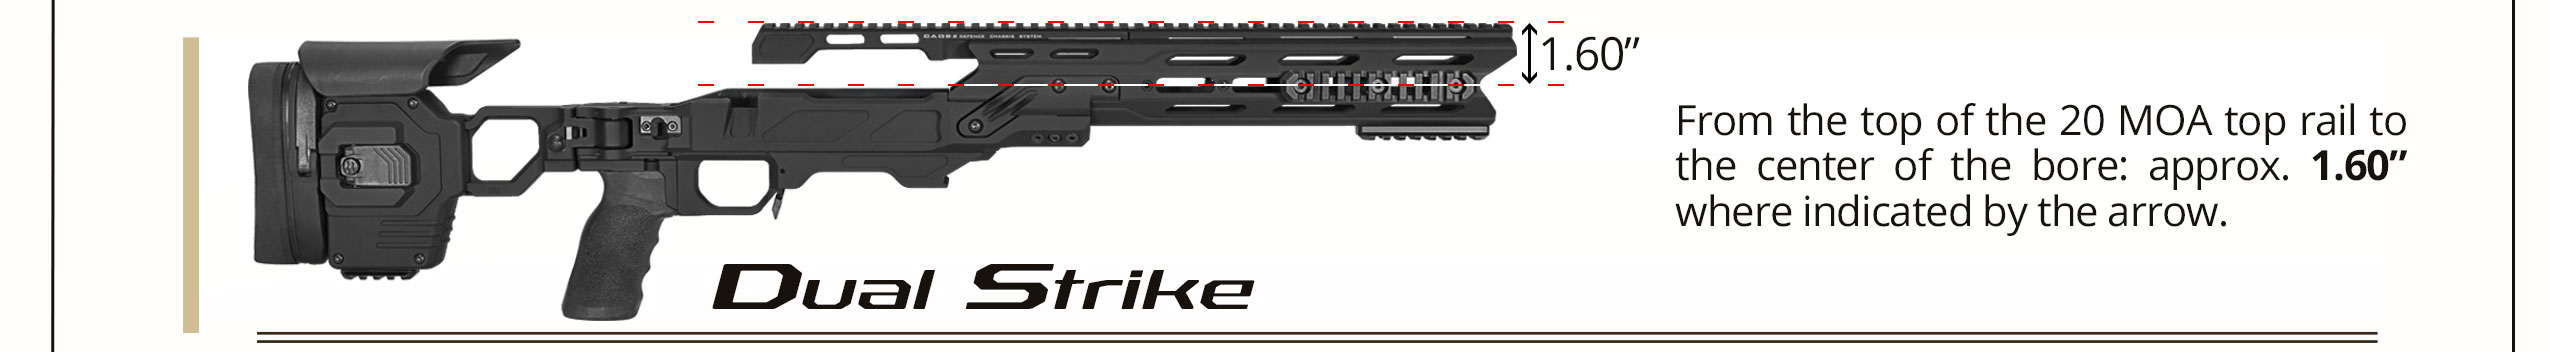 Dual-Strike-Bore-Height